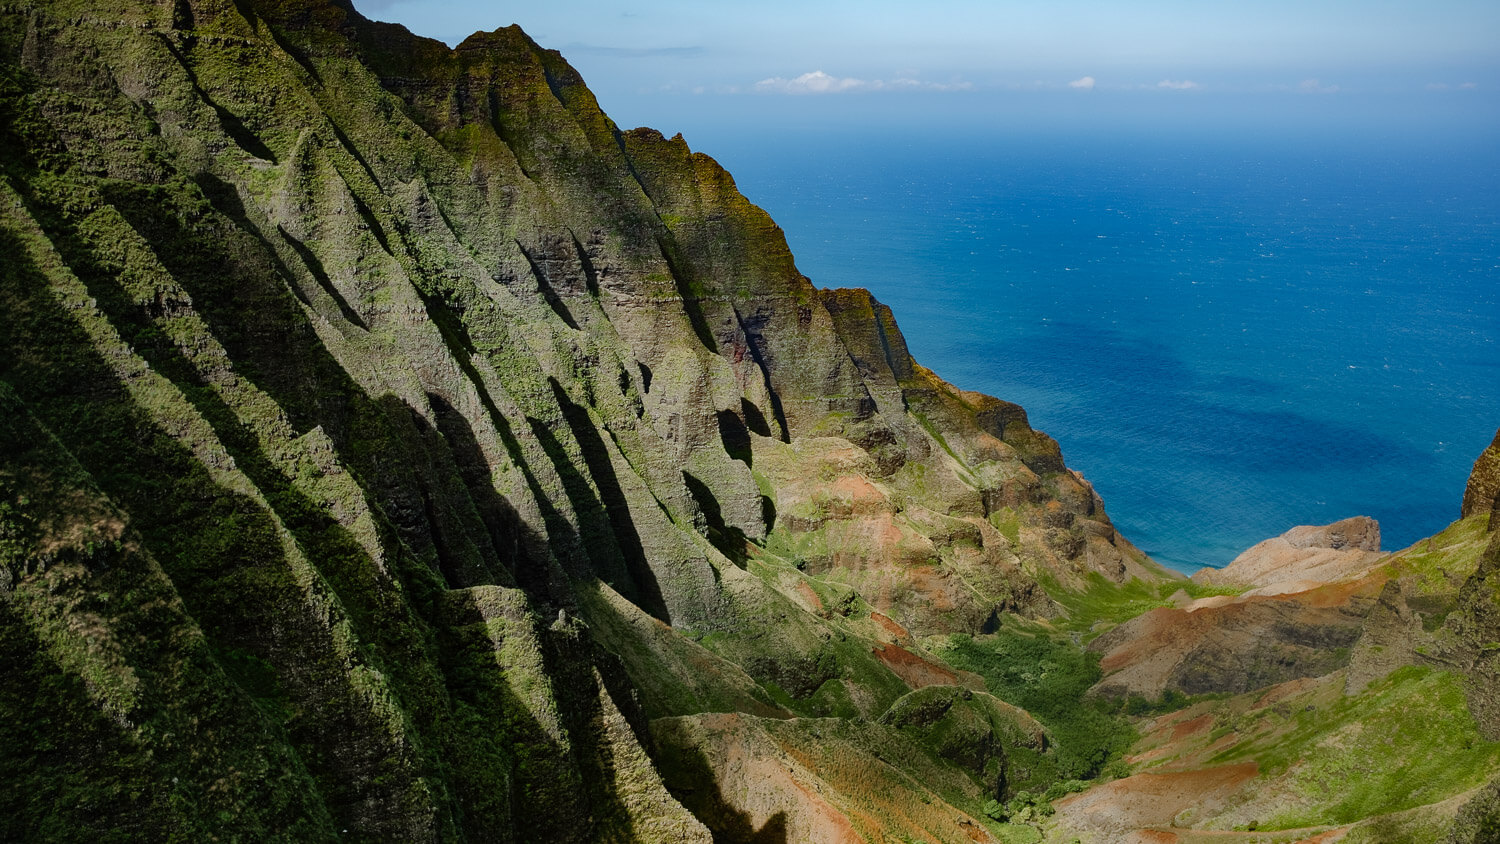 """Kauai views from the helicopter. Travel photography and guide by © Natasha Lequepeys for """"And Then I Met Yoko"""". #hawaii #travelguide #photoblog #travelblog #landscapephotography #fujifilm"""